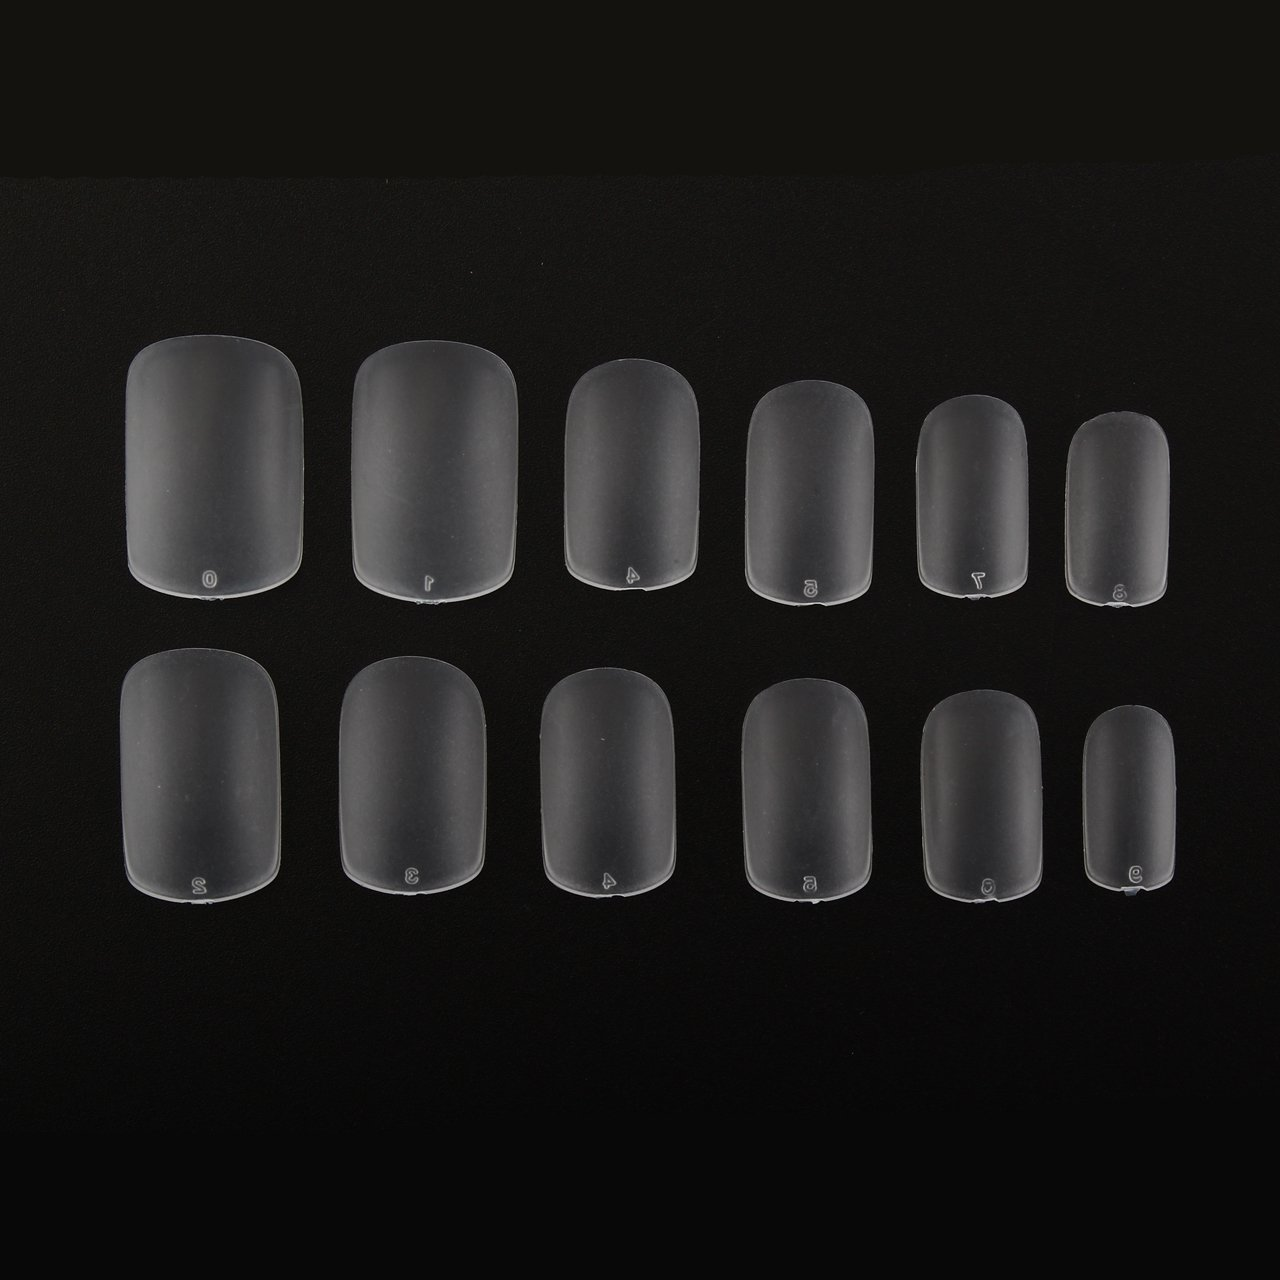 Amazon.com : Makartt 504Pcs Super Thin Nails Tips 0.12mm Clear Full ...